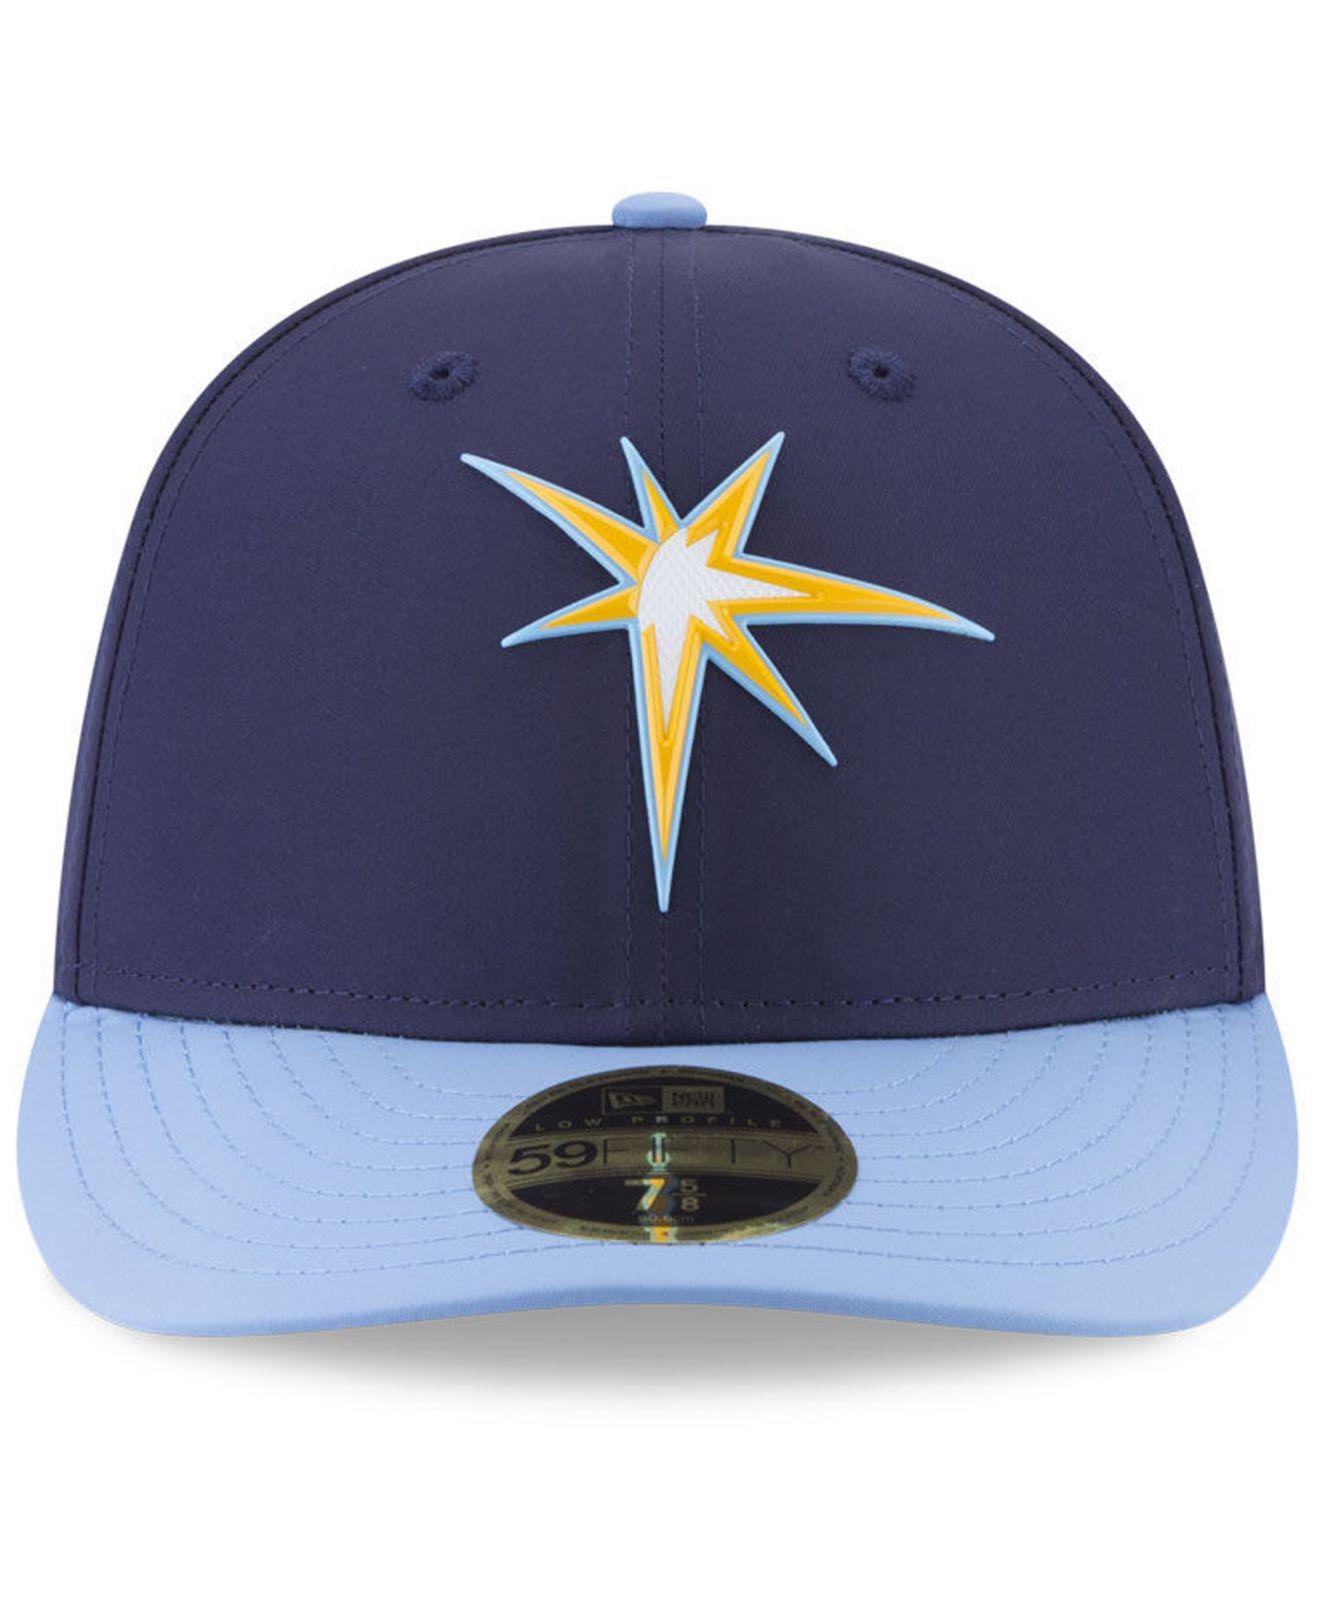 ce76edd2fd3 Lyst - KTZ Tampa Bay Rays Low Profile Batting Practice Pro Lite 59fifty  Fitted Cap in Blue for Men - Save 25%